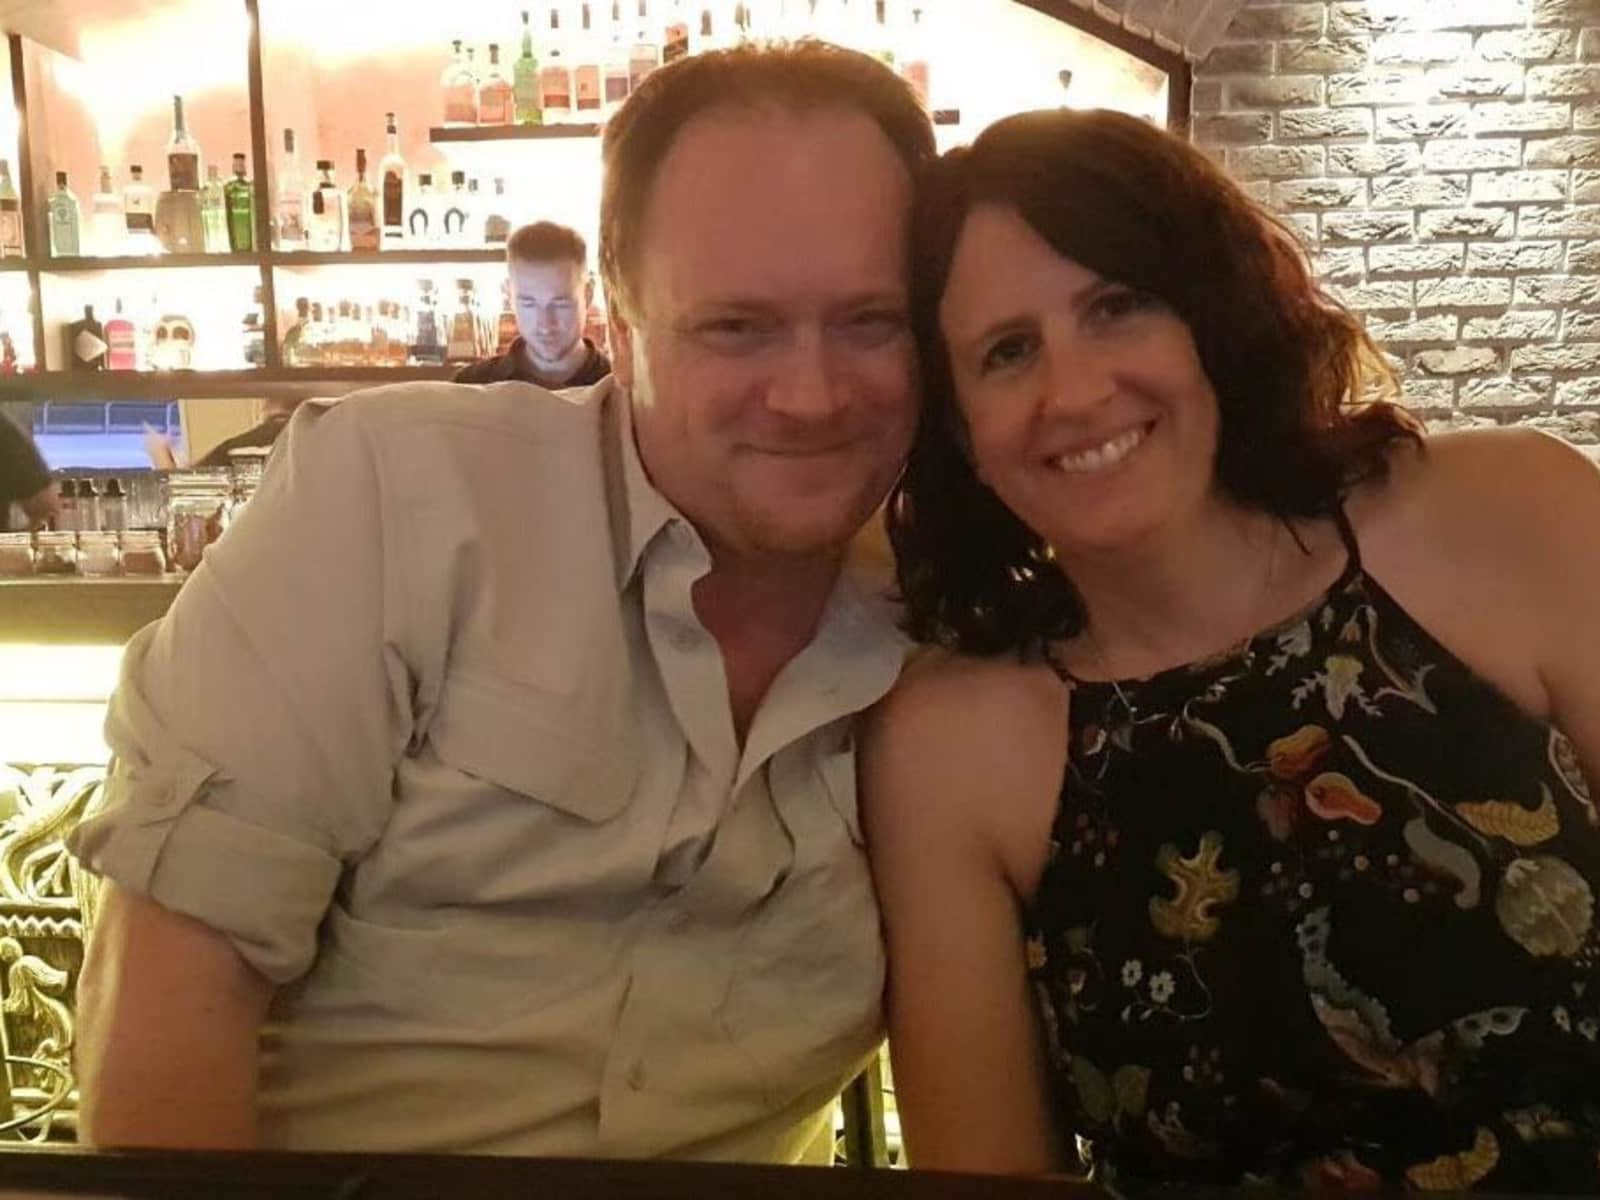 Iain & Michelle from West Dereham, United Kingdom